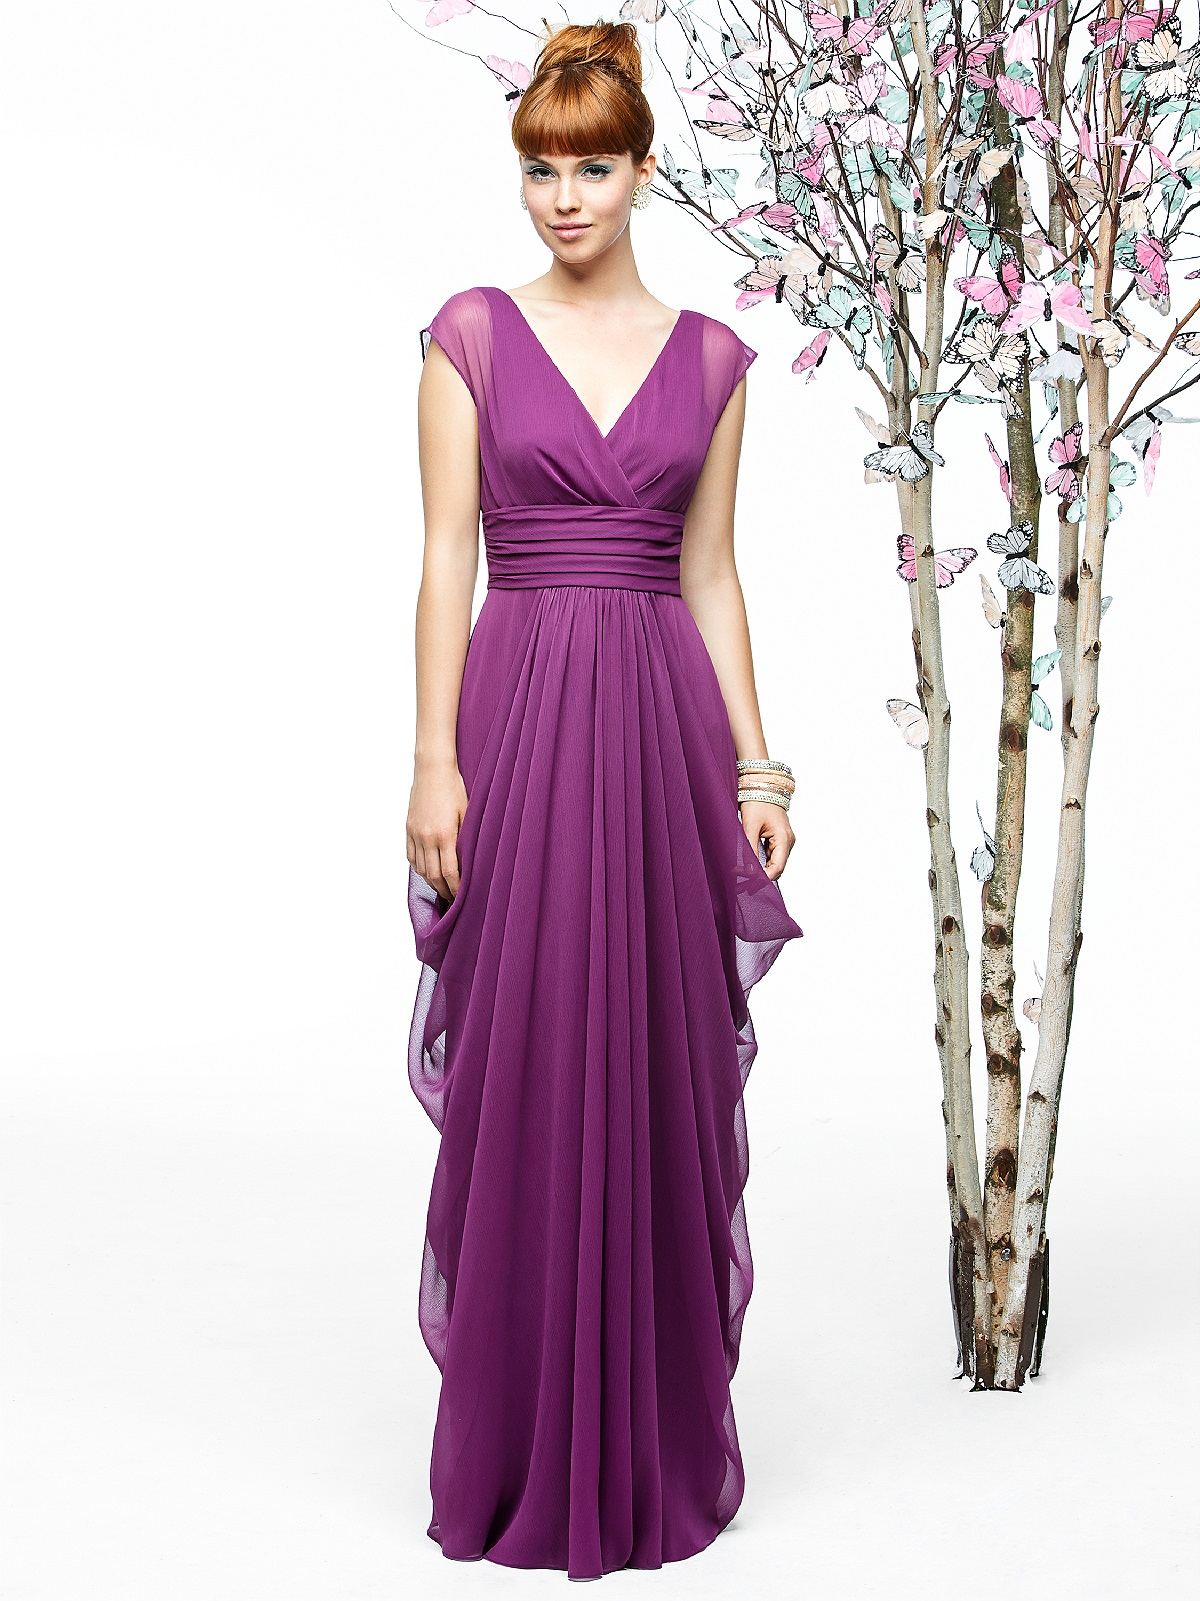 LELA ROSE BRIDESMAID DRESSES|LELA ROSE DRESSES LR 200|THE DESSY ...